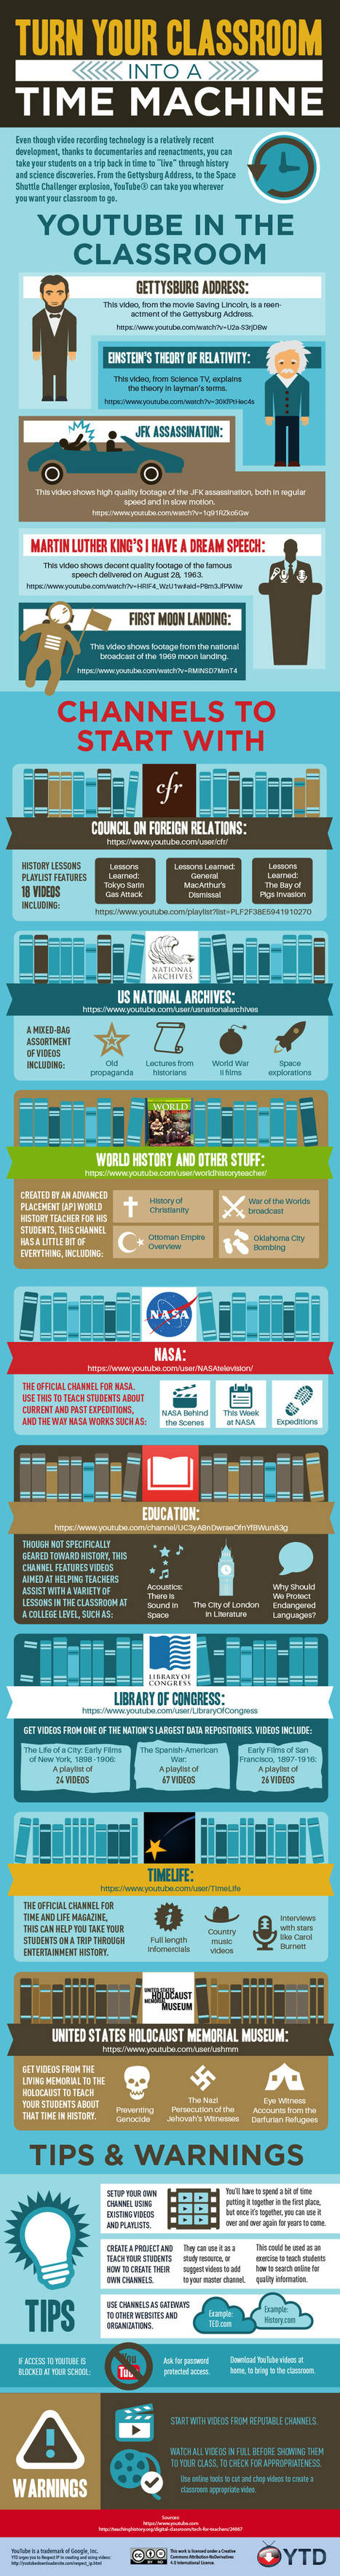 Using YouTube as a Time Machine for Your Classroom #Infographic   Social Media 4 Education   Scoop.it